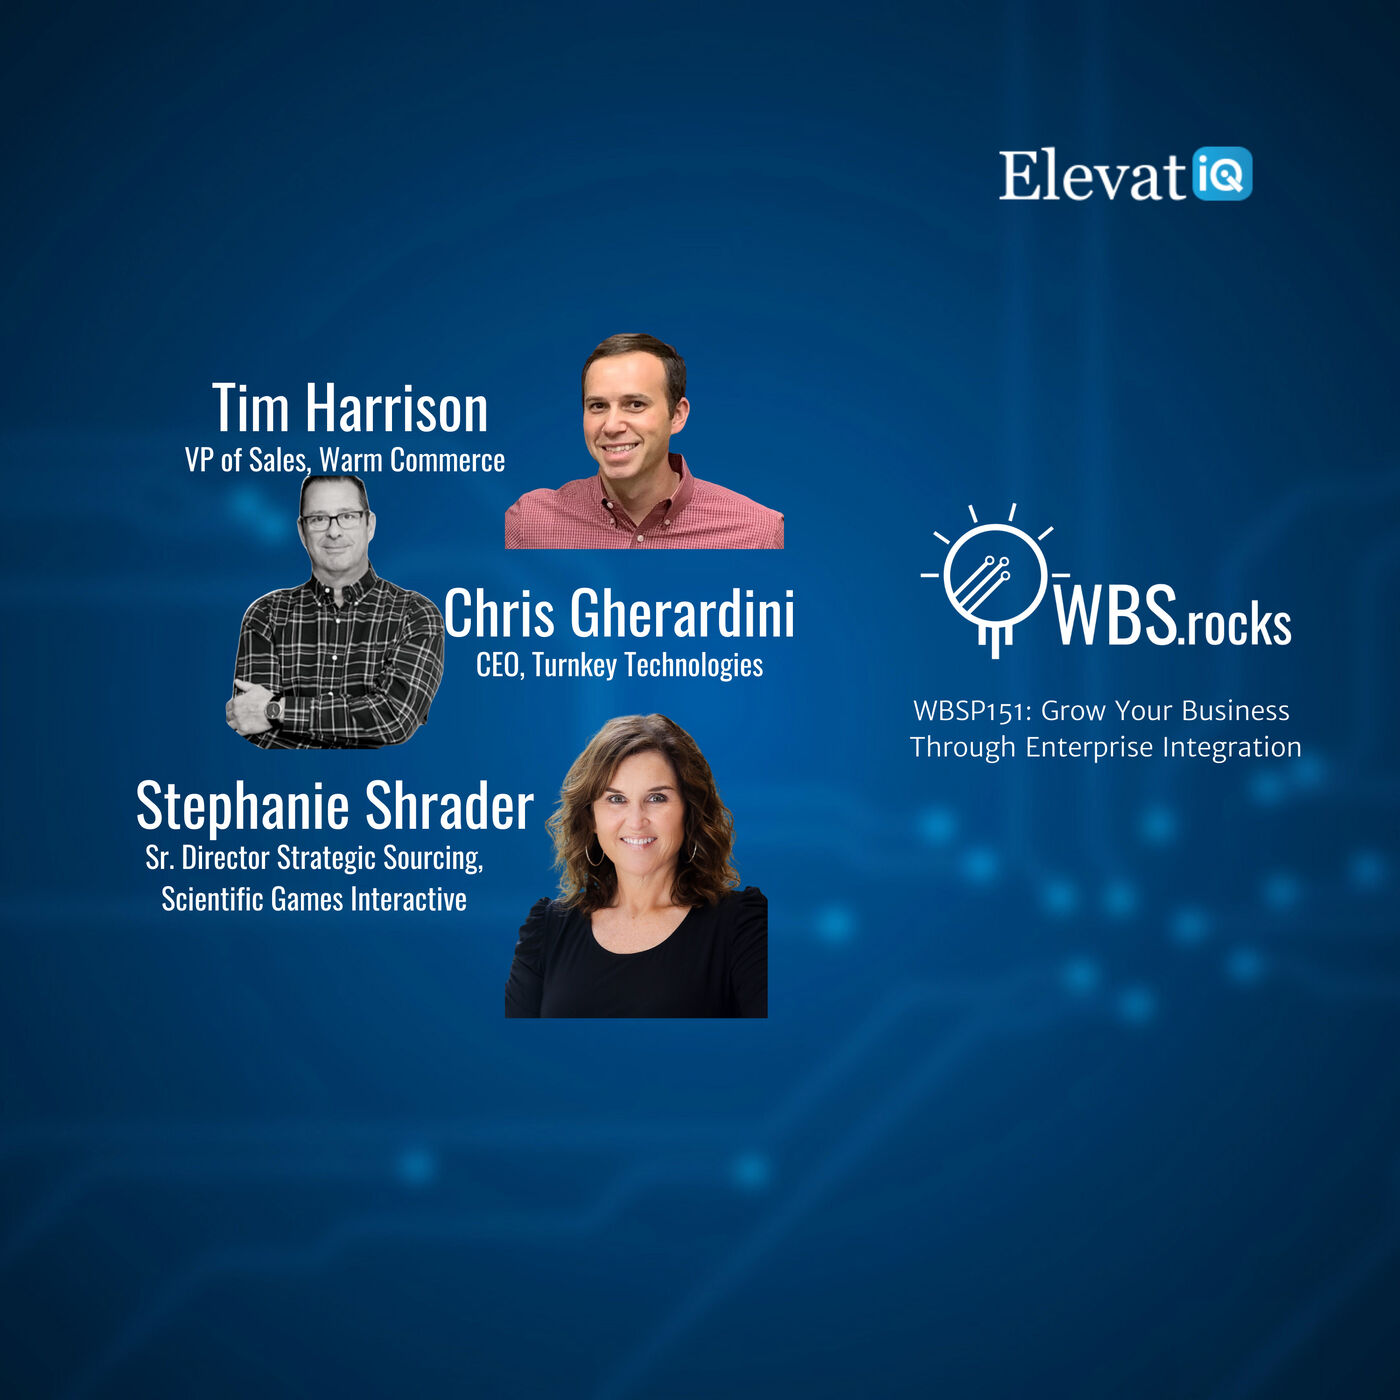 WBSP151: Grow Your Business Through Enterprise Integration, a Live Interview w/ a Panel of Experts